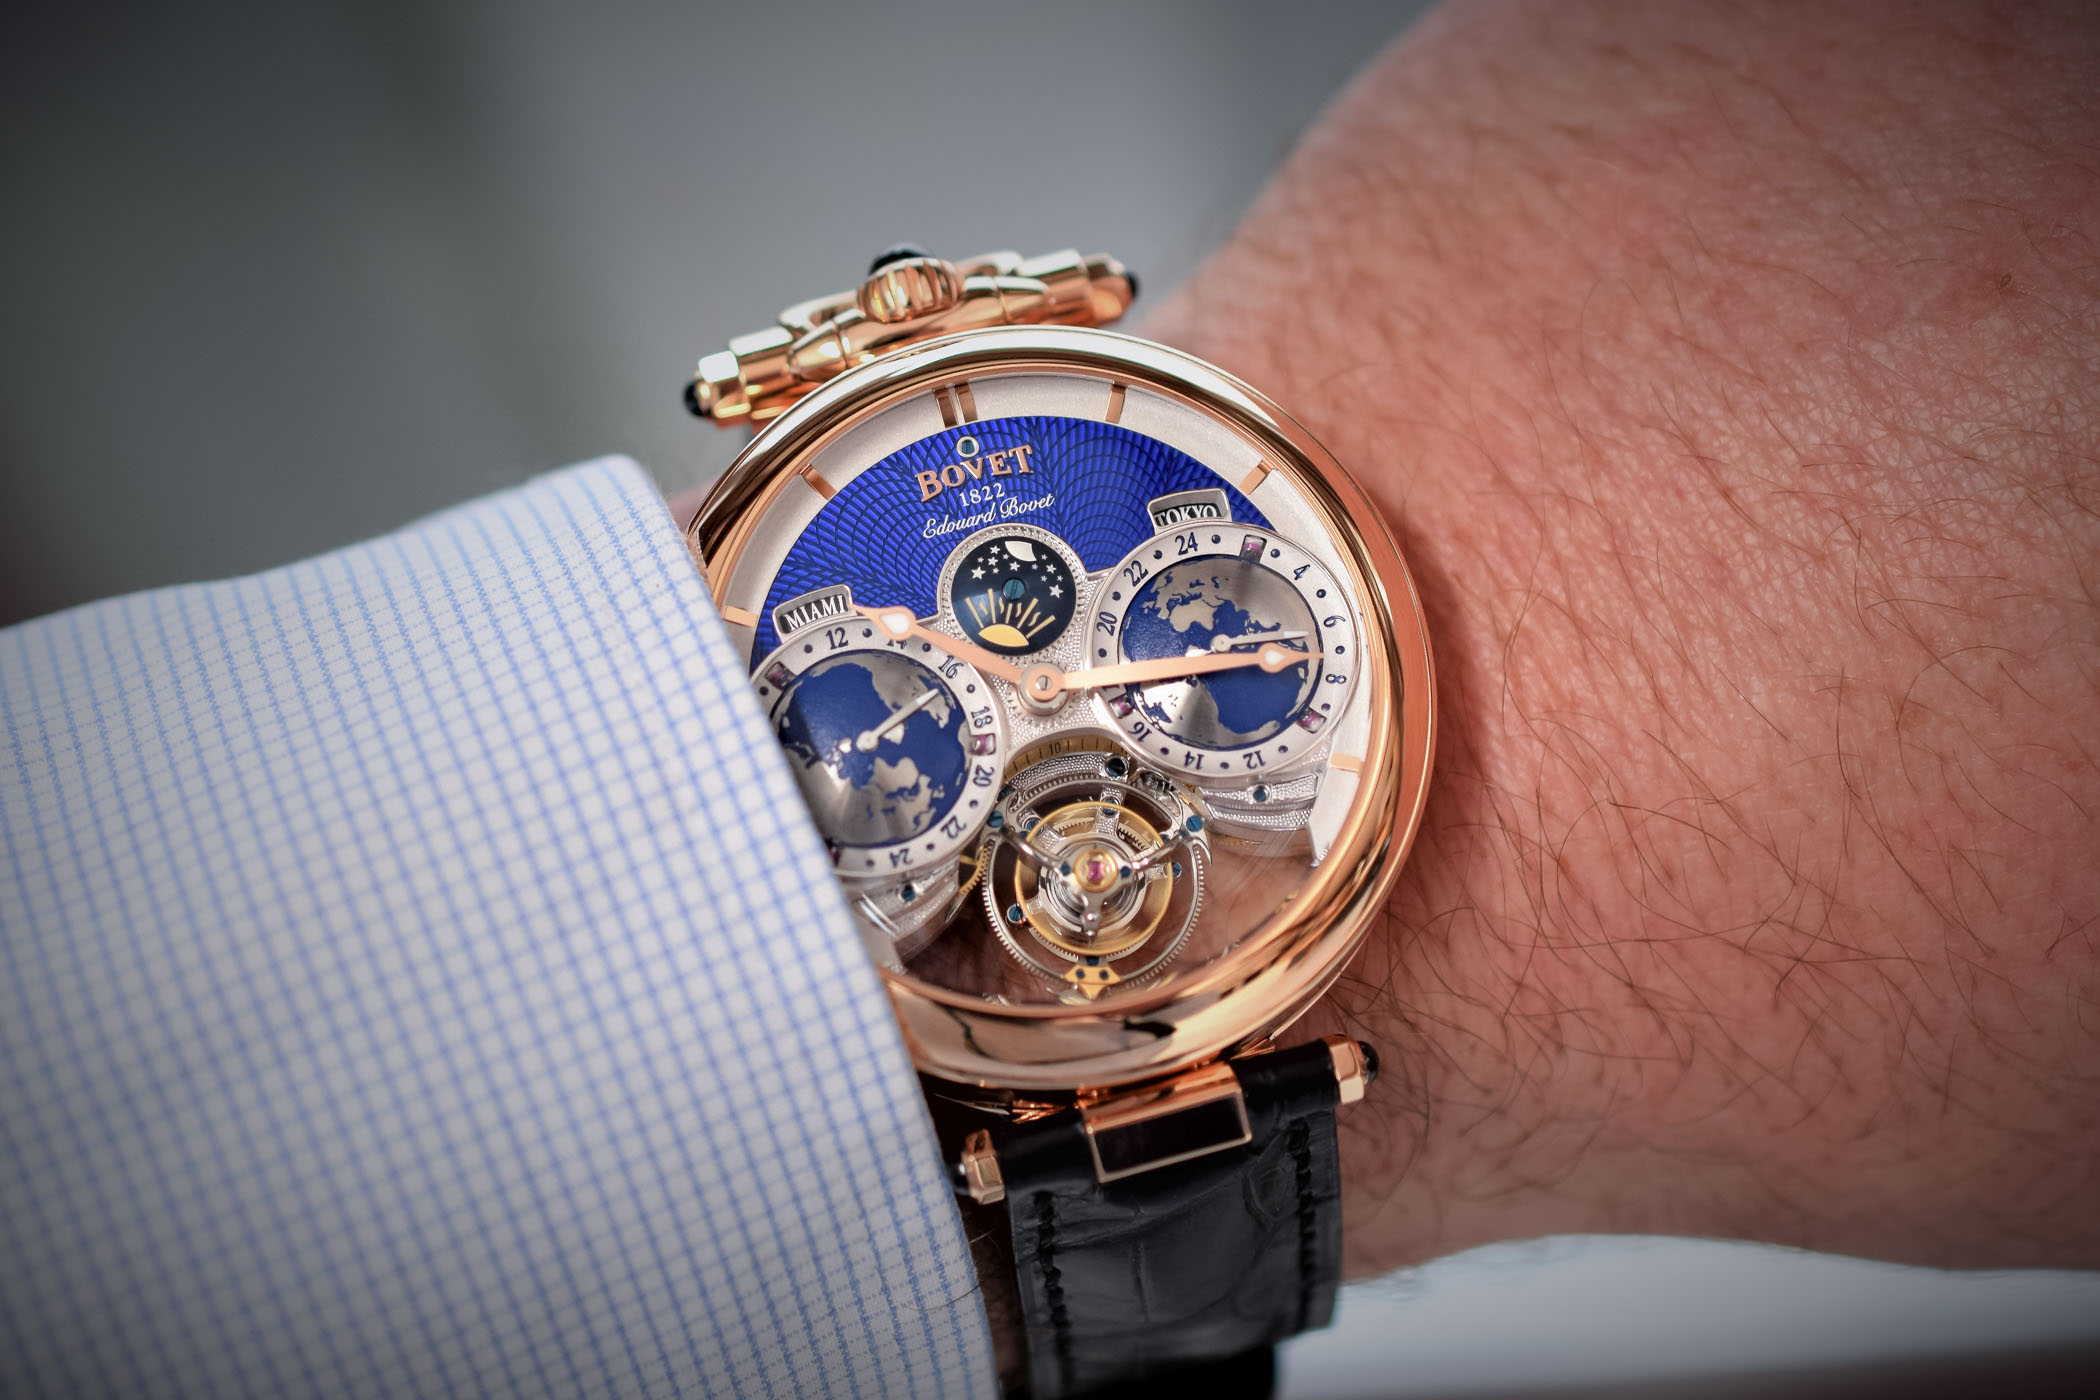 hands movement base no the efficiency edouard eb simultaneously for grandes an watches and three timepiece ensuring hemispherical eight than less drives fleurier tourbillon complications bovet displays exceptional continuously web